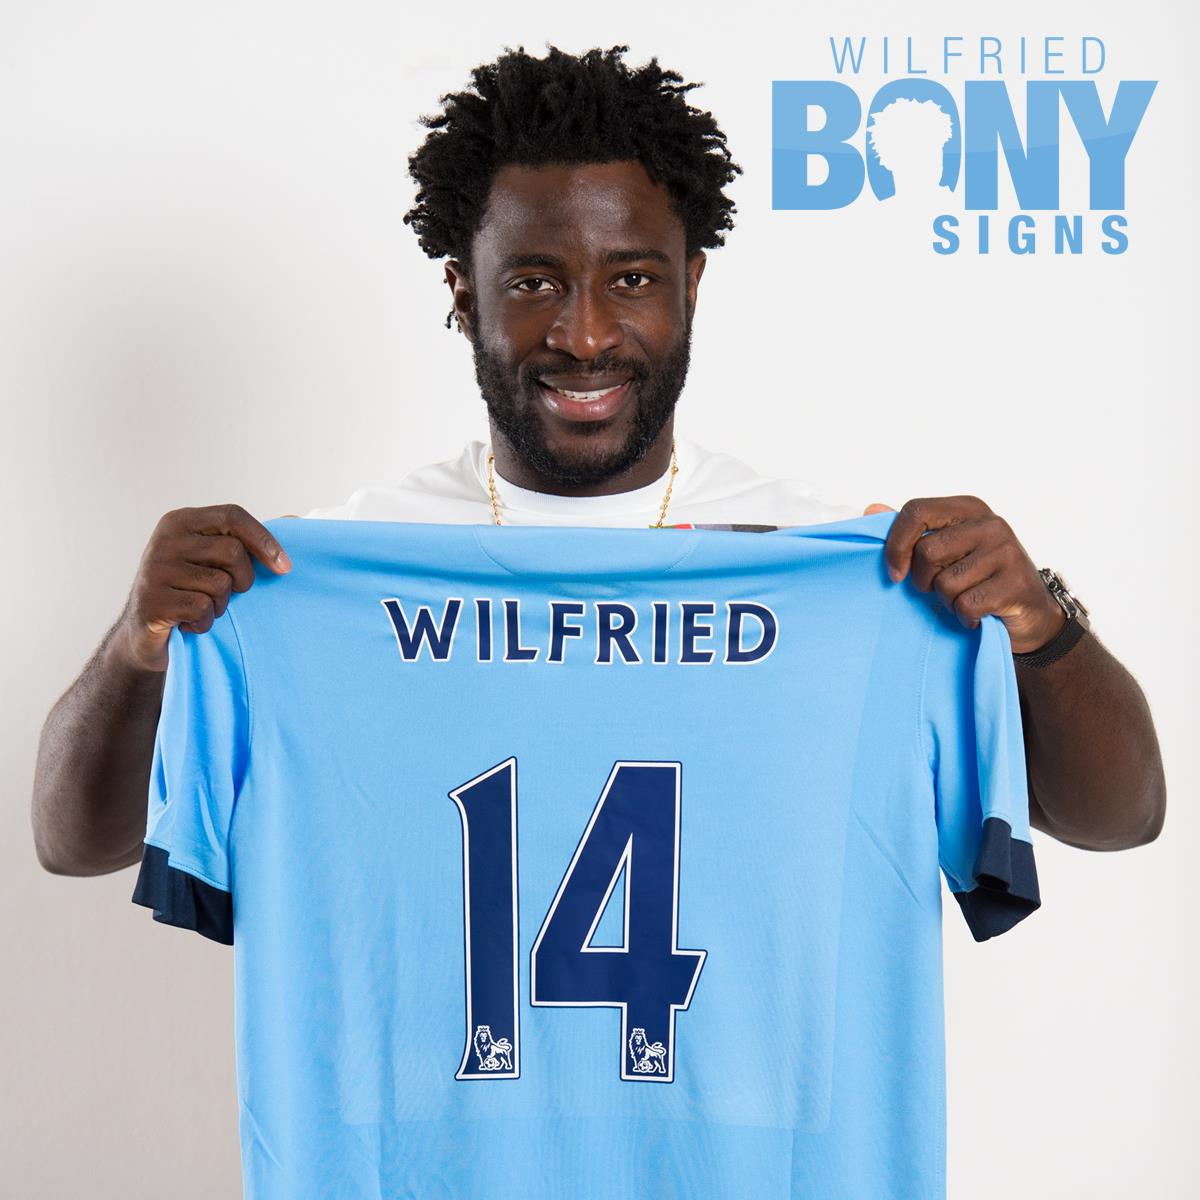 Welcome Wilfried - City's new £25m striker needs to get 'Out of Africa' asap and back to City's title push. Courtesy@MCFC